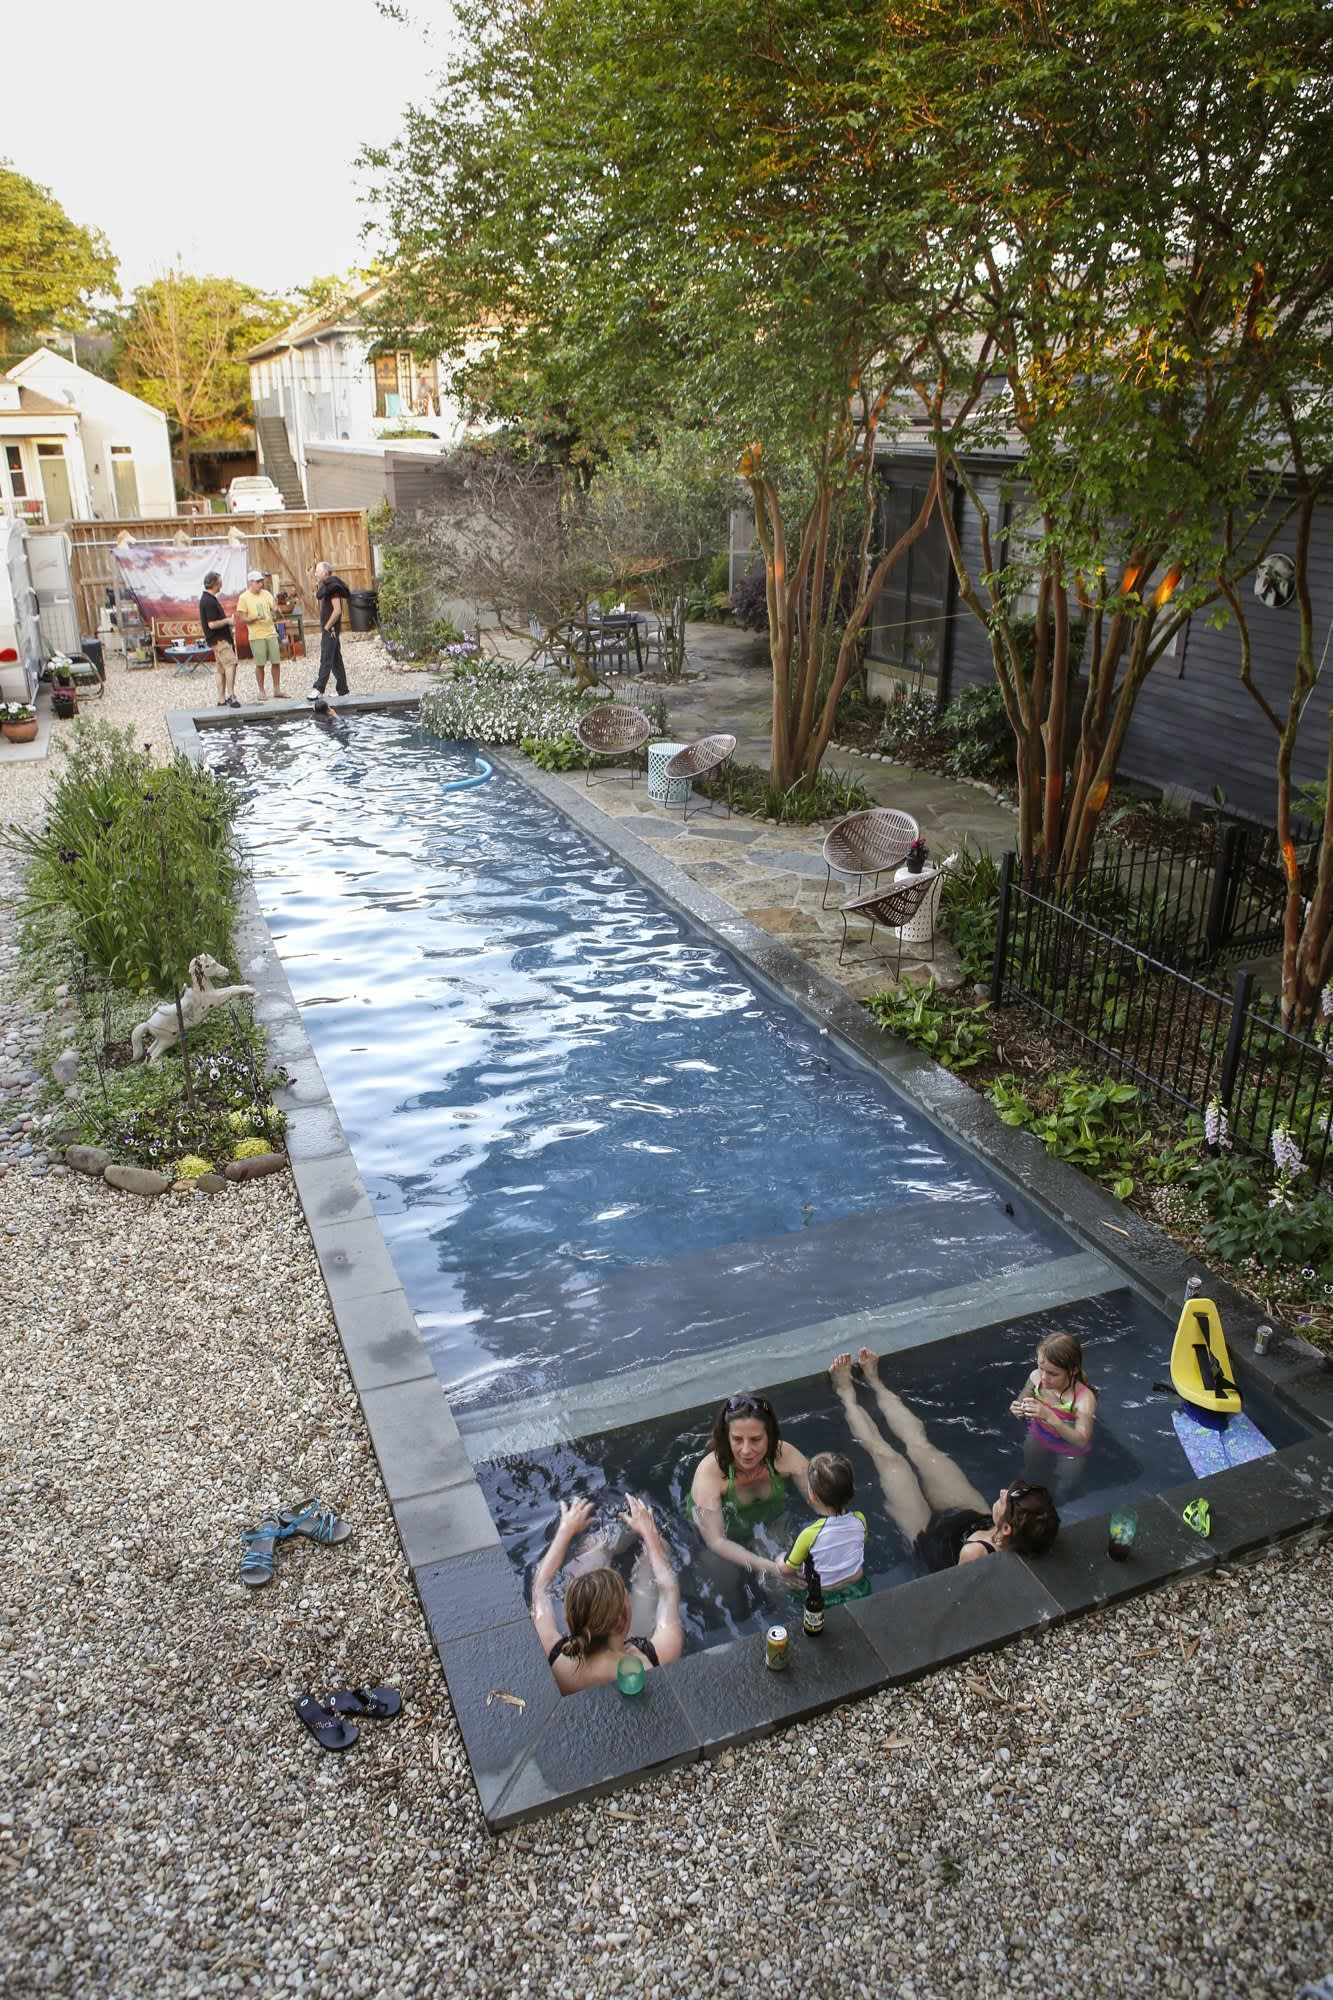 20 of the Dreamiest Backyard Pools You'll Ever See is part of Small pool design, Backyard pool, Small pools, Backyard, Natural pool, Garden pool - There are three reasons you could be reading this article  1 You do not yet have a pool, but wish to build one  2 You already have a pool, and wish to compare your pool to the pools in these photos  3  You have no pool, but enjoy torturing yourself by looking at pictures of other people's pools  If you fall into category 1 or 2, I can assure you that you will enjoy this post  But if you fall into category 3, then know this this post was written especially for you